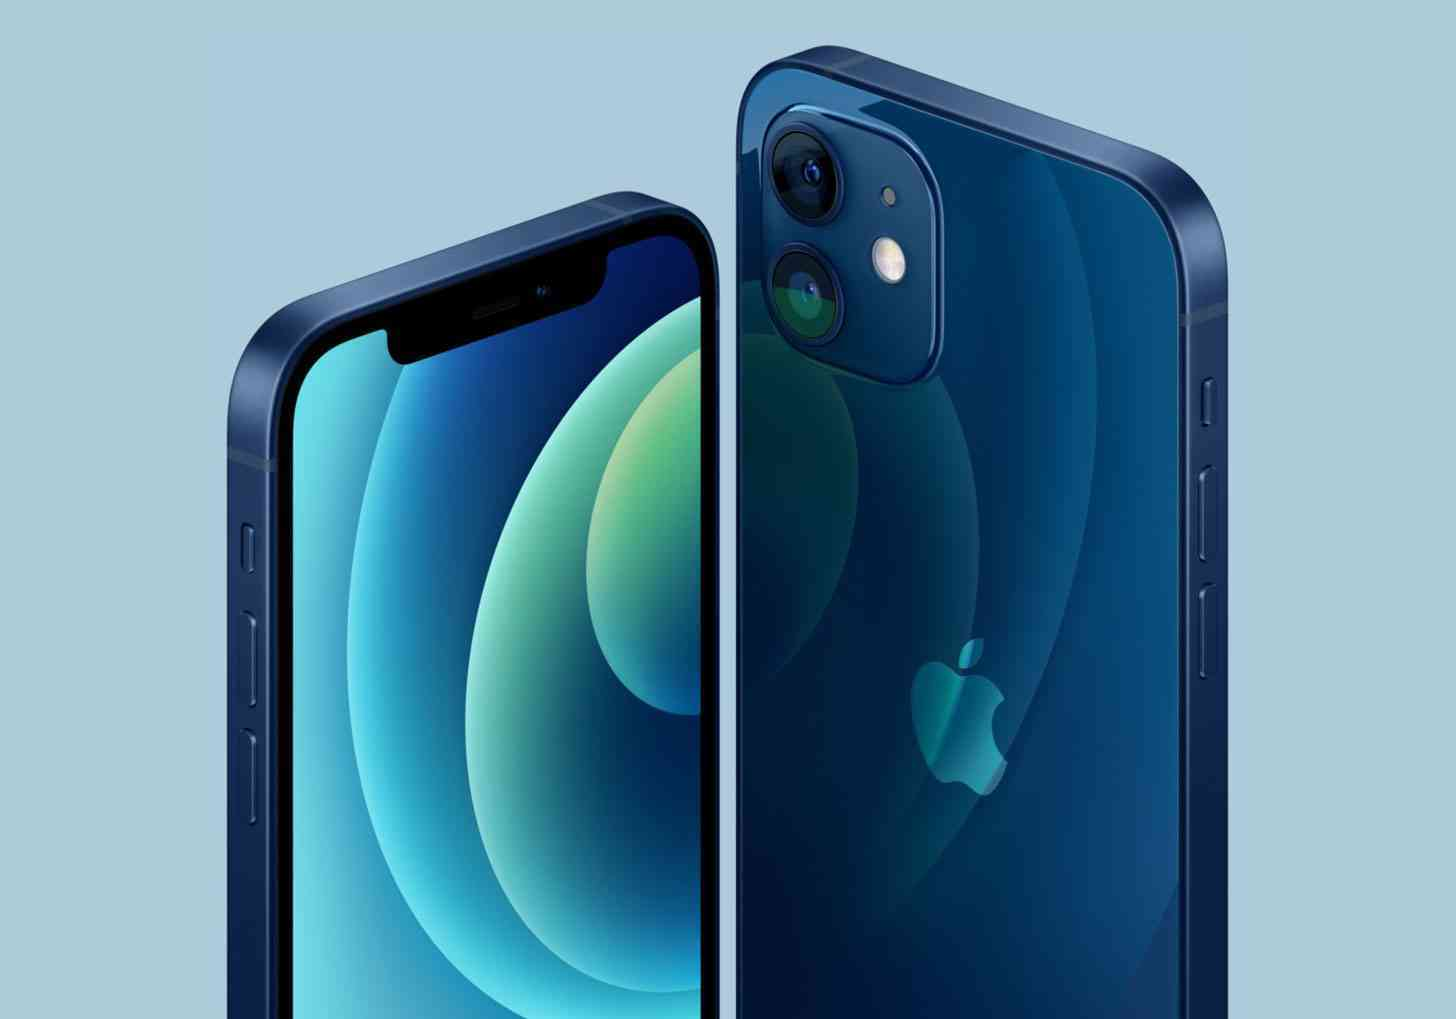 iPhone 12 in blue